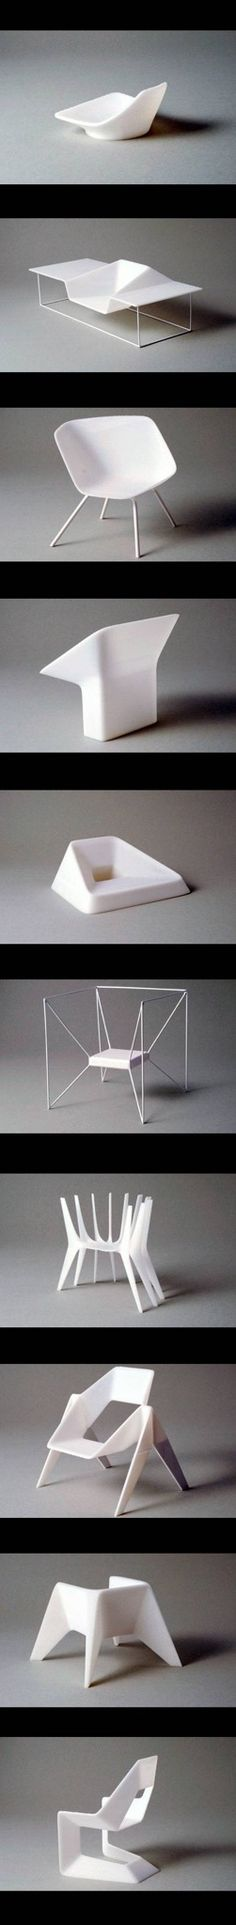 One to Five Chair Series Design by Thomas Feichtner